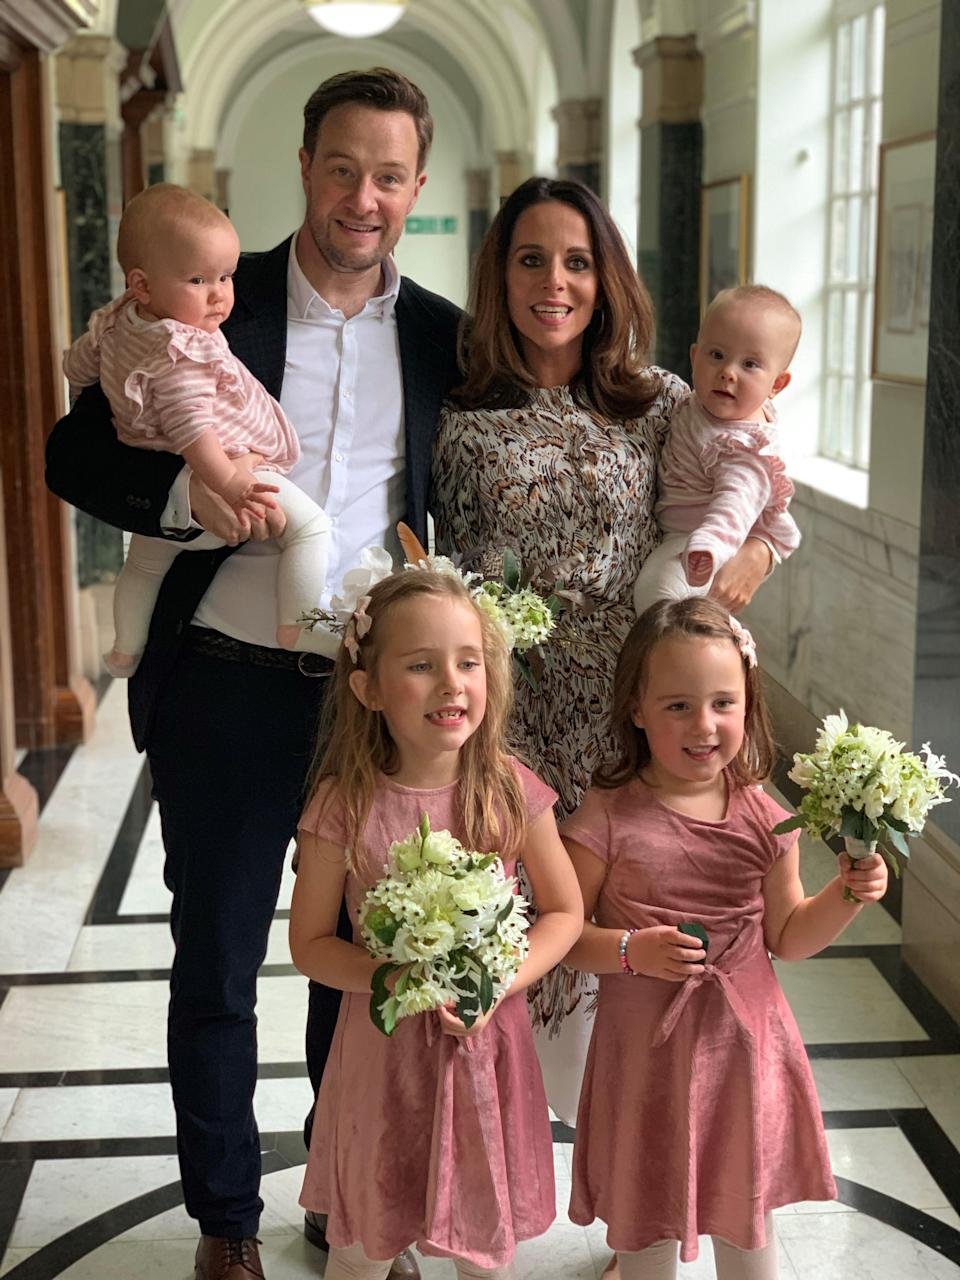 Mariam and Billy with their daughters at their wedding in 2019 (Family handout/PA)